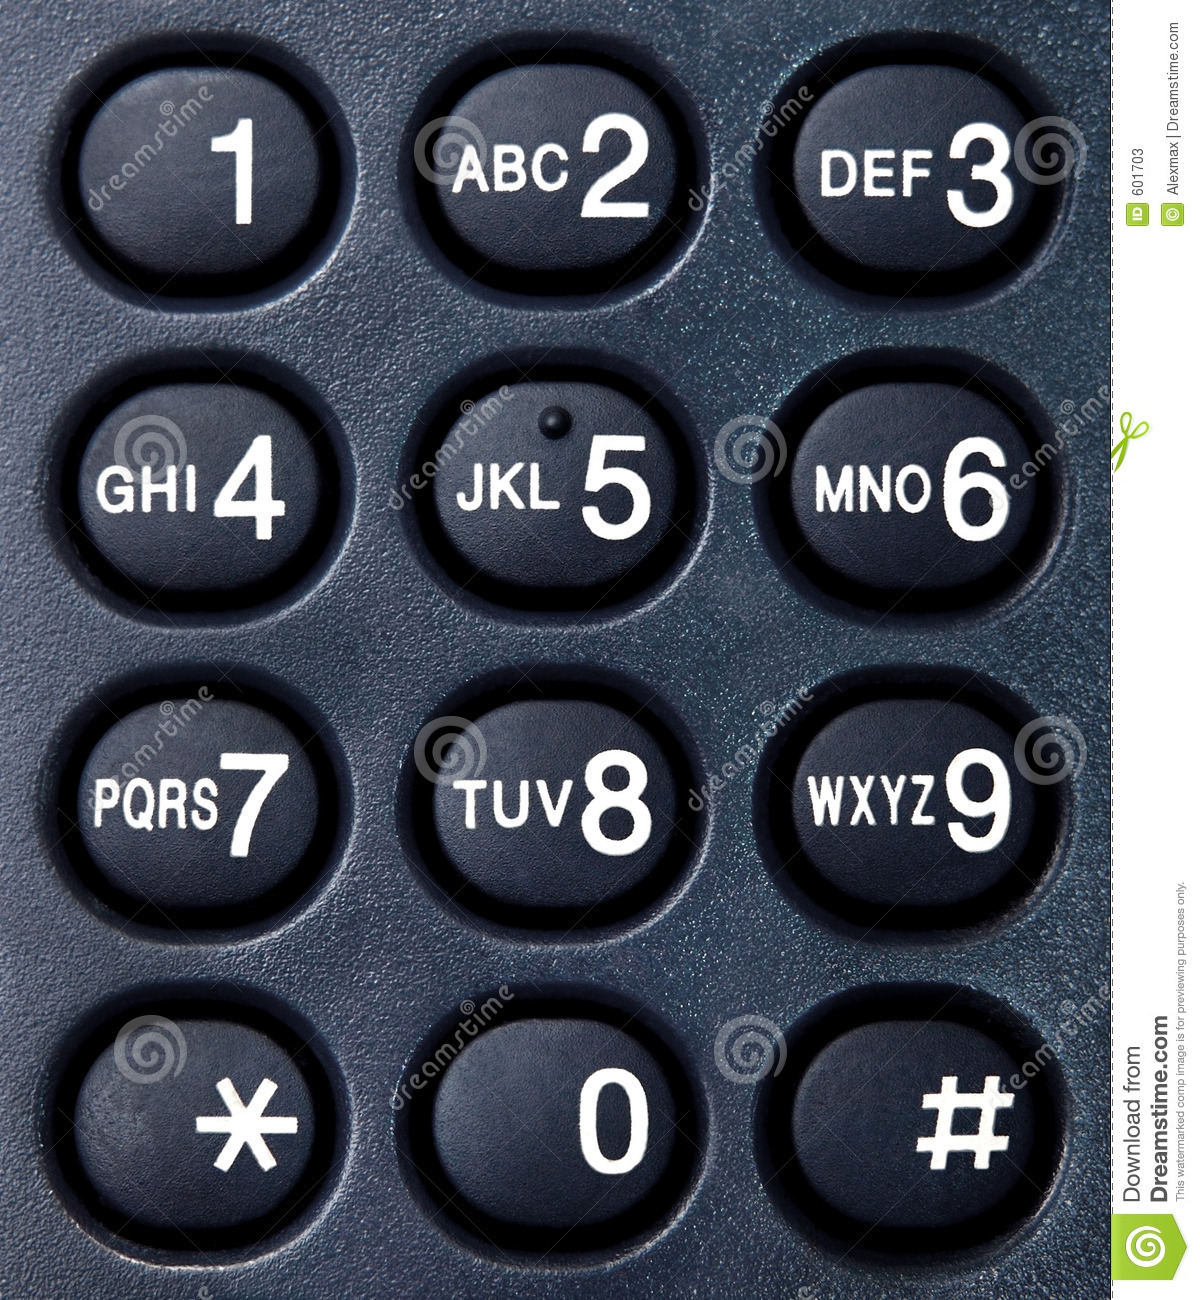 Phone Dial 2 Stock Photos - Image: 601703: http://www.dreamstime.com/stock-photos-phone-dial-2-image601703